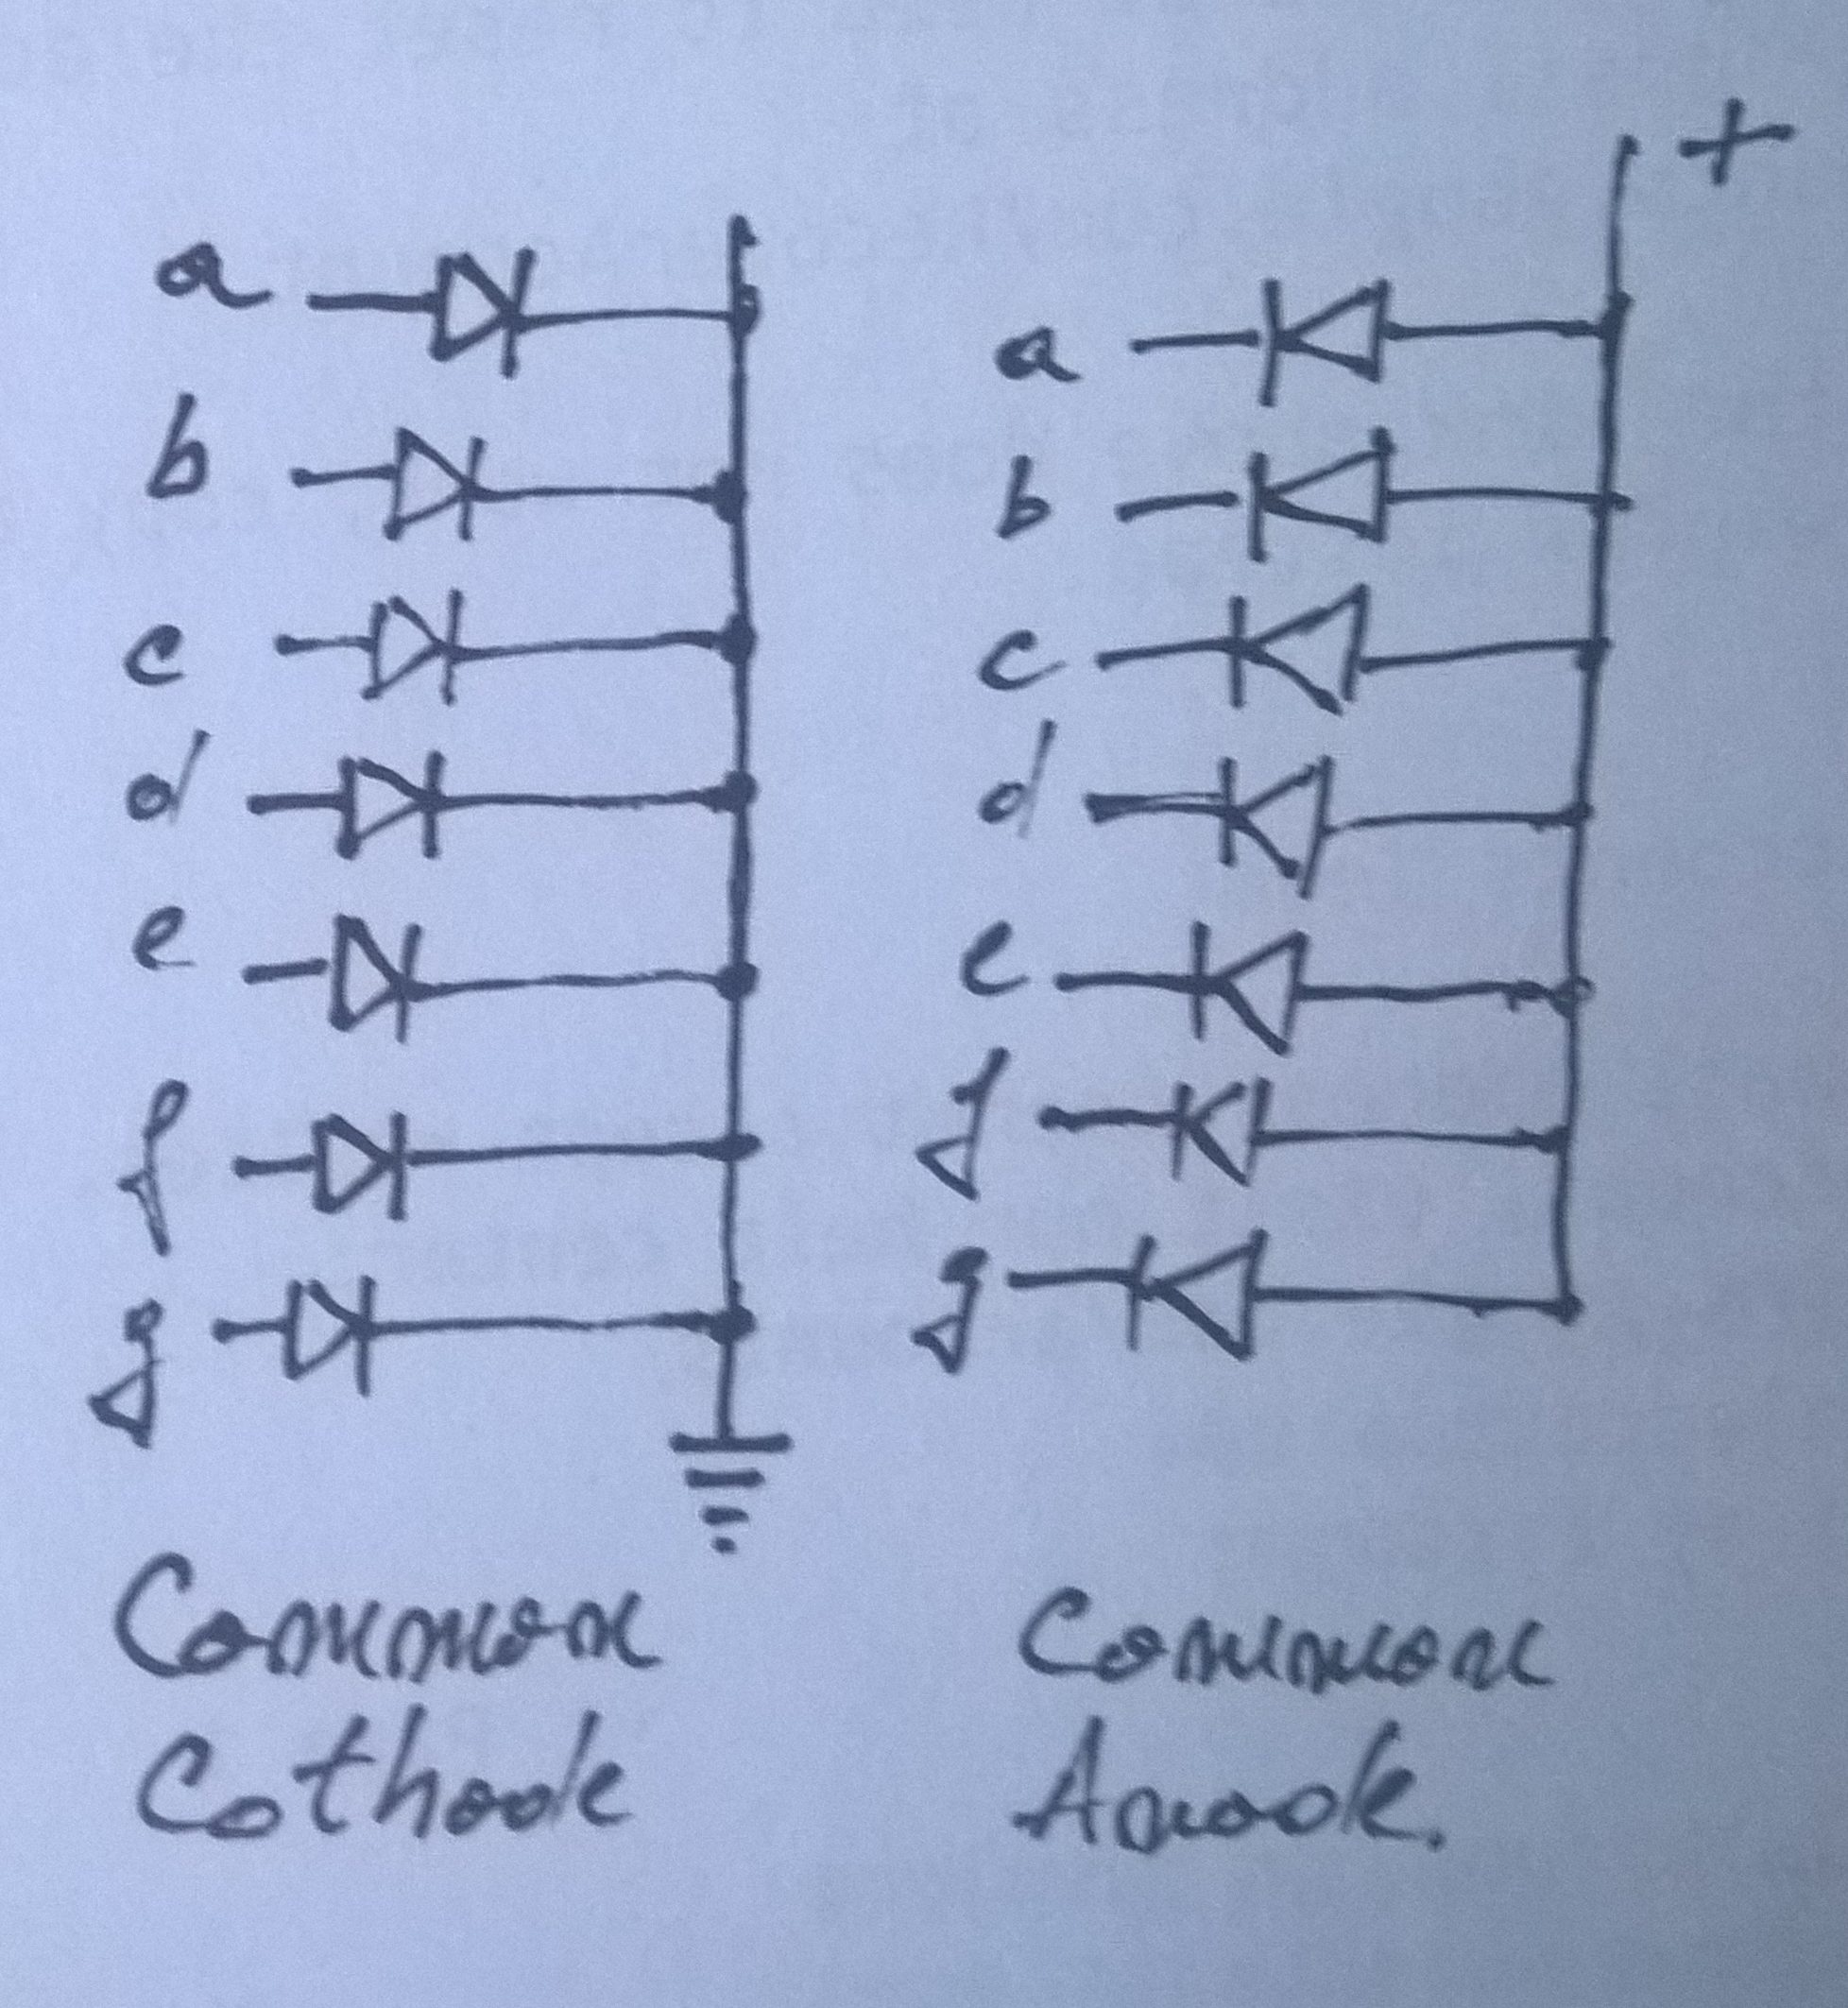 common cathode common anode